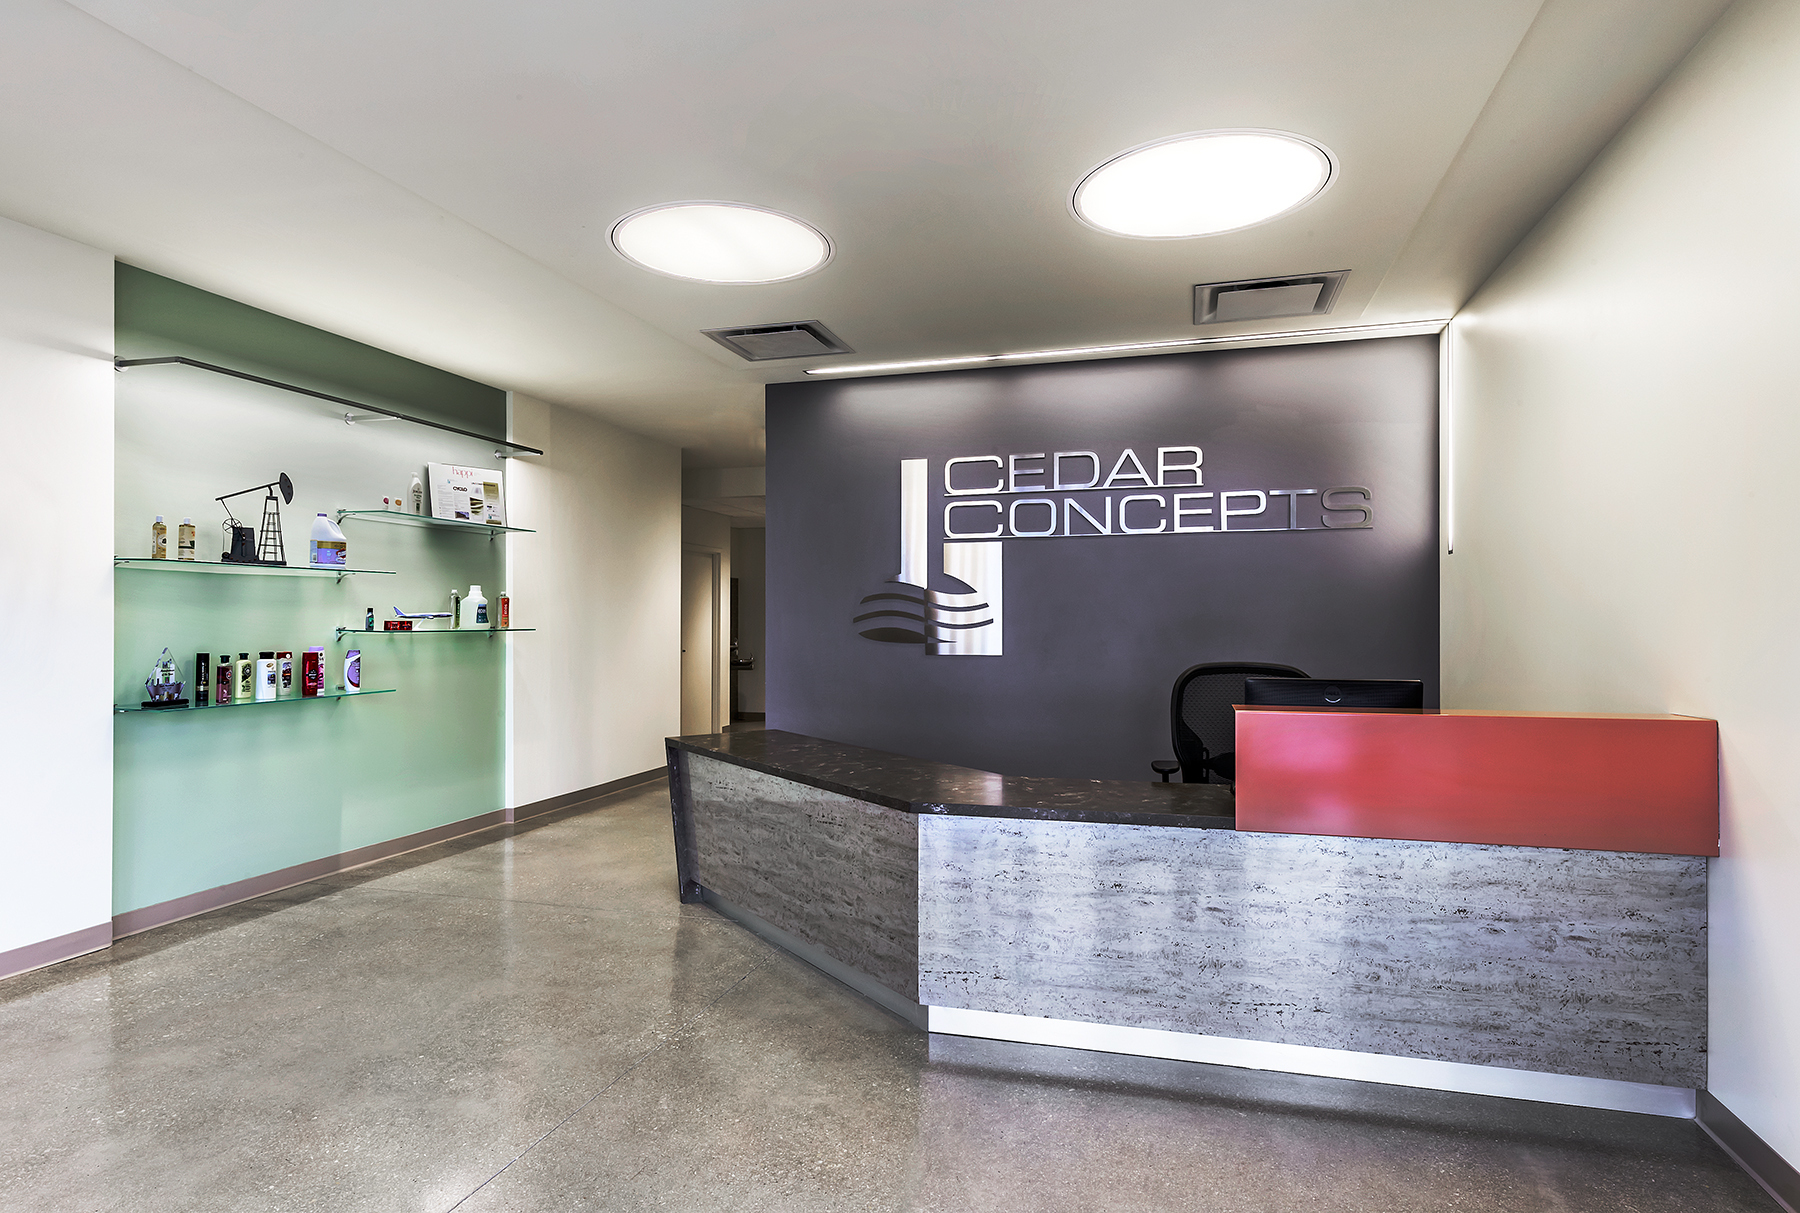 Cedar-Concepts-Chicago-Illinois-Receptio